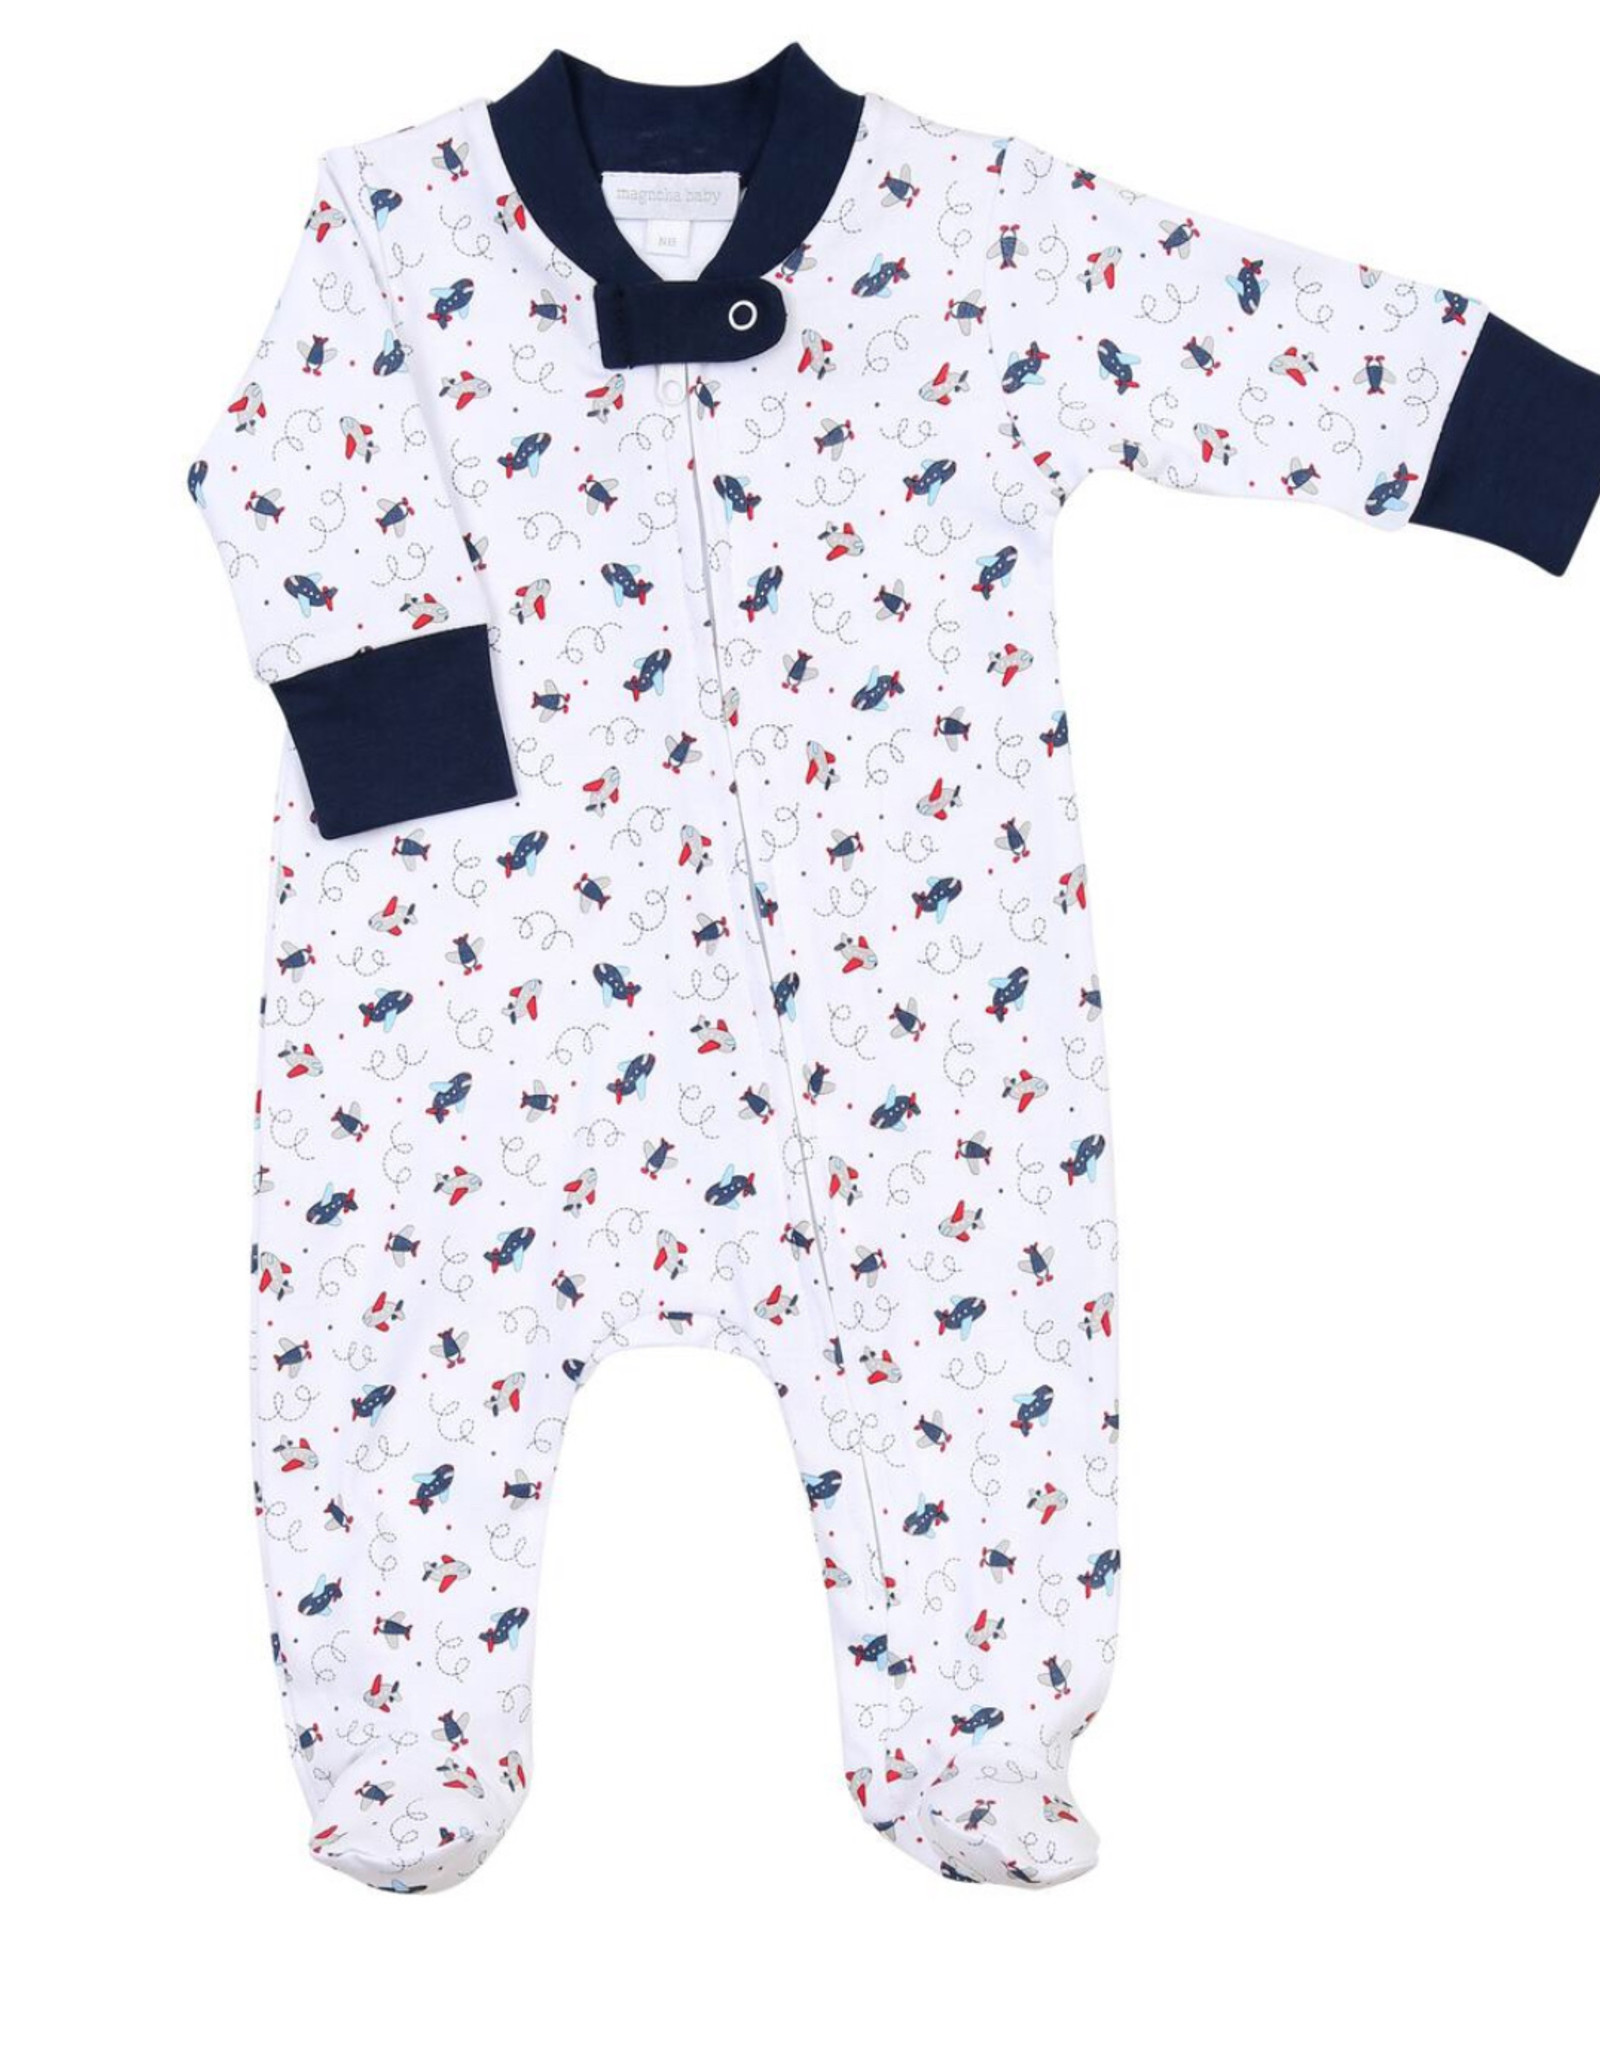 magnolia baby In Flight Zippered Footie